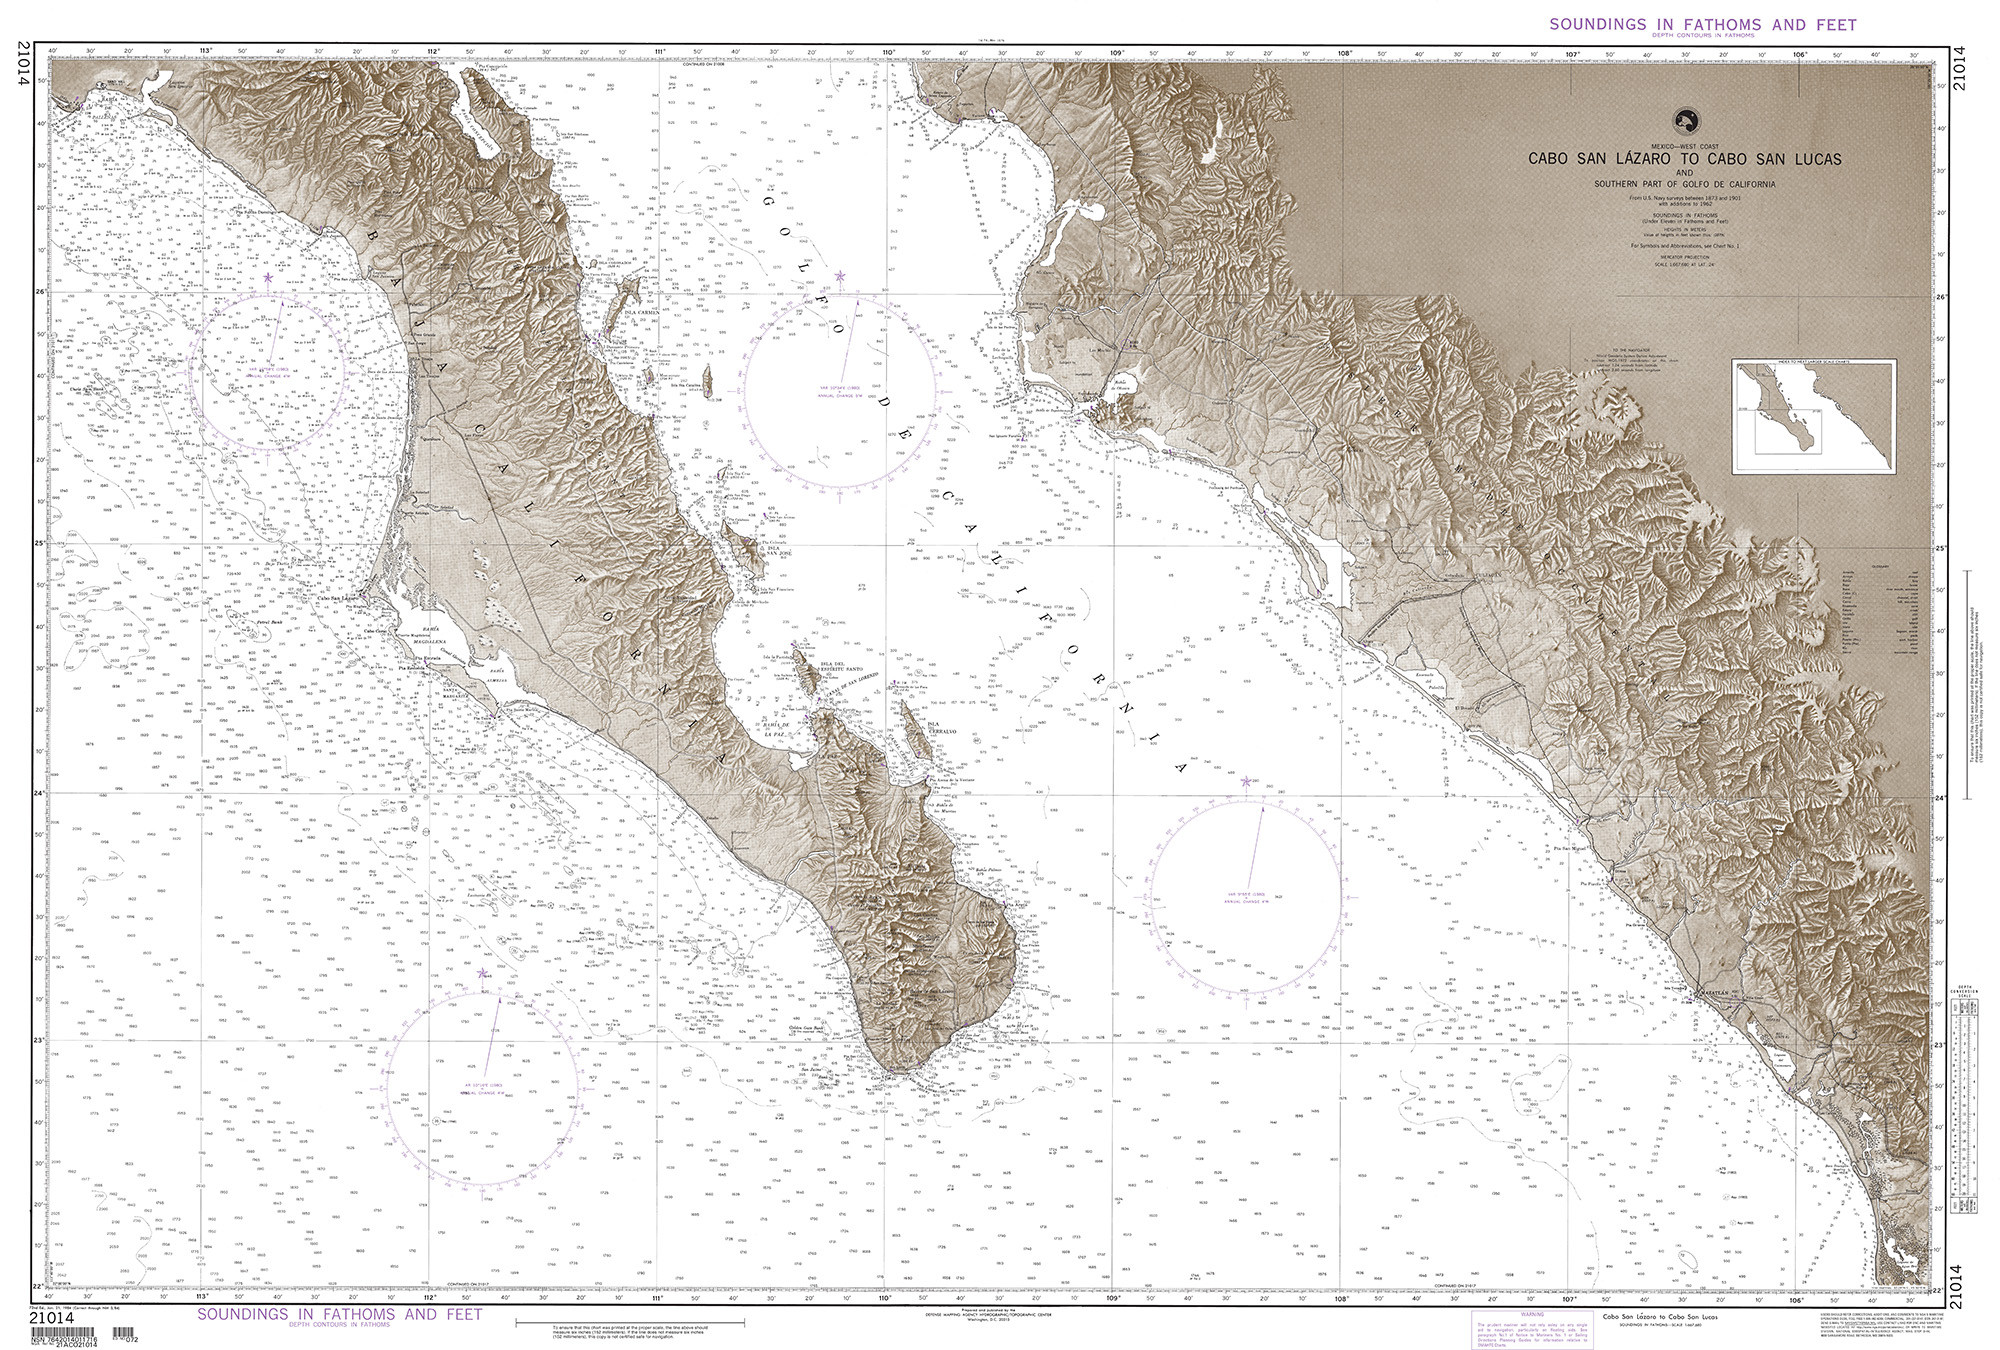 Gulf Of California Map.Nga Nautical Chart 21014 Cabo San Lazaro To Cabo San Lucas And Southern Part Of Gulf Of California Mexico West Coast Omega